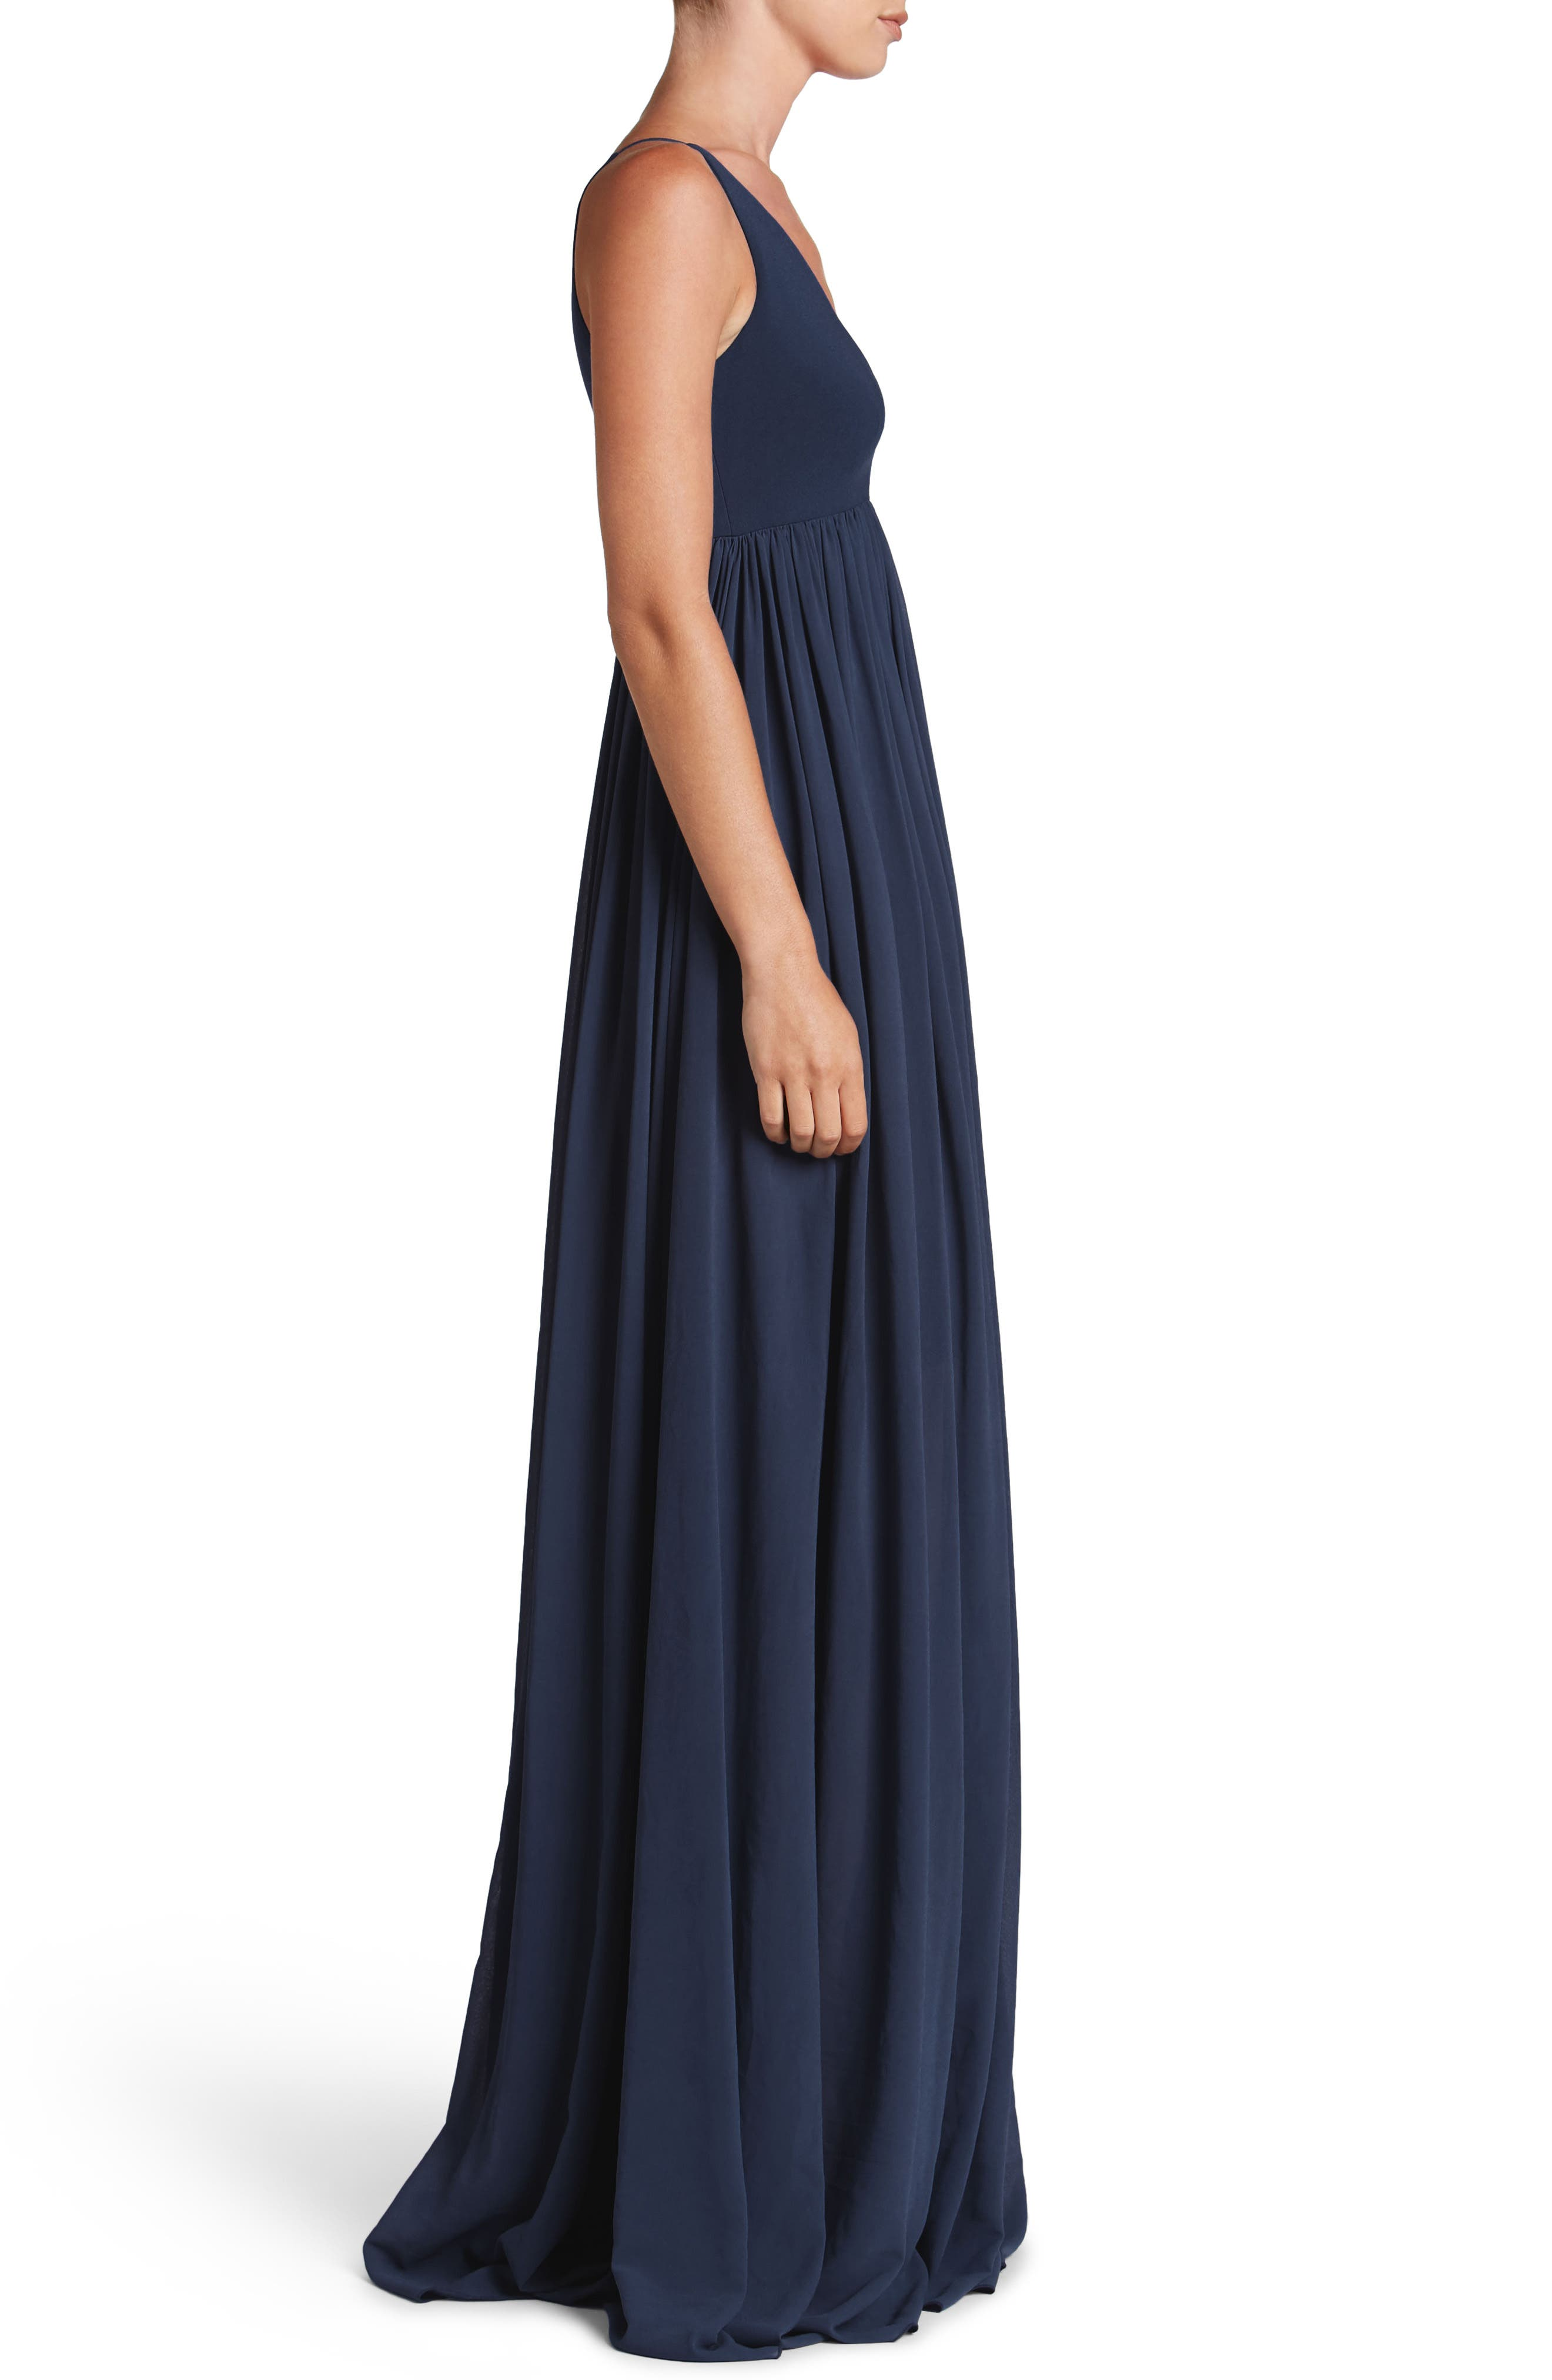 DRESS THE POPULATION, Phoebe Chiffon Gown, Alternate thumbnail 3, color, 456